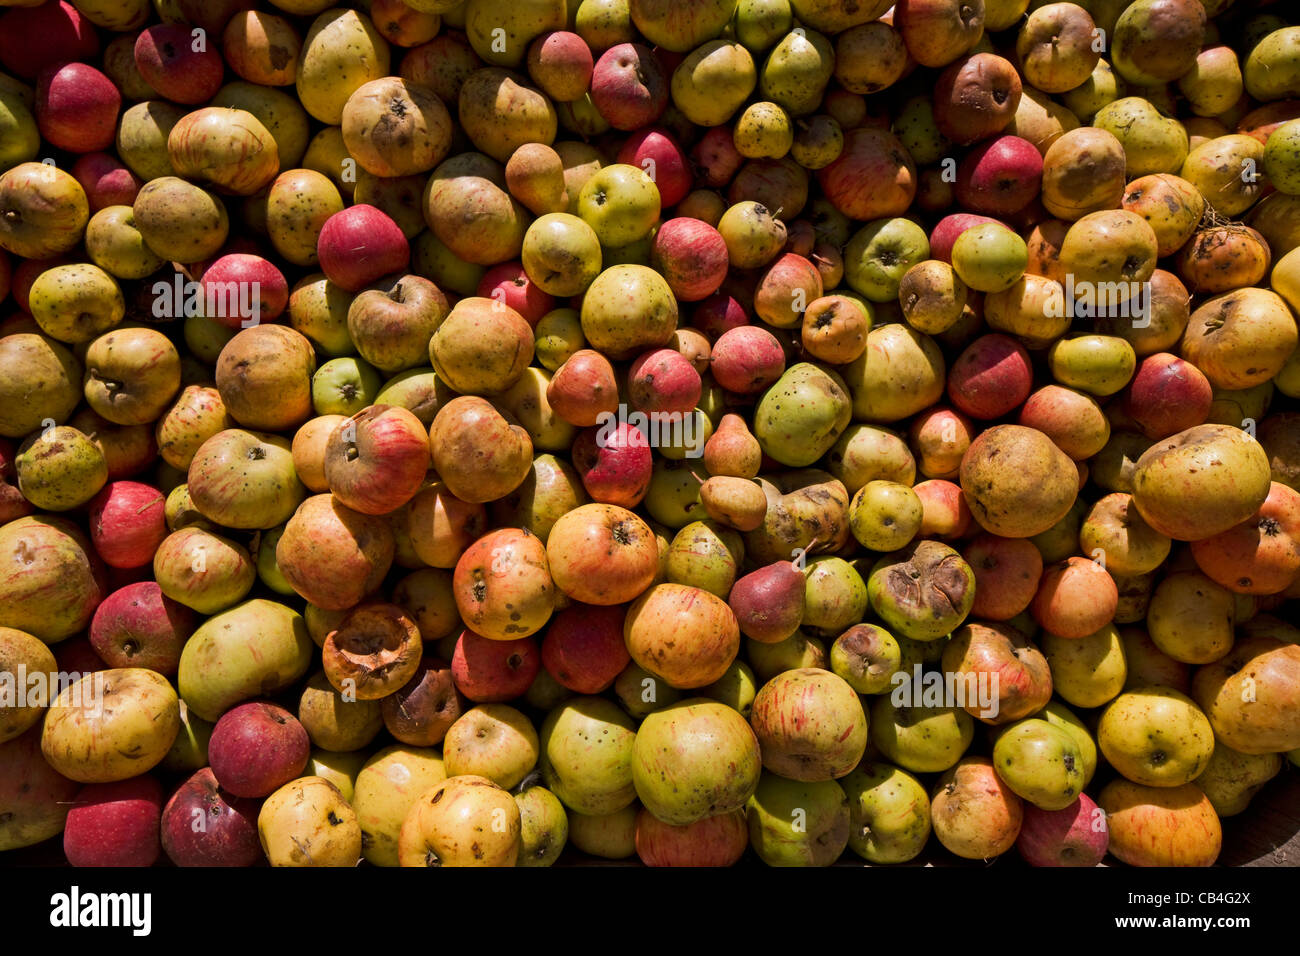 Pile of harvested fallen apples from orchard for the production of fruit juice, Hesbaye, Belgium Stock Photo